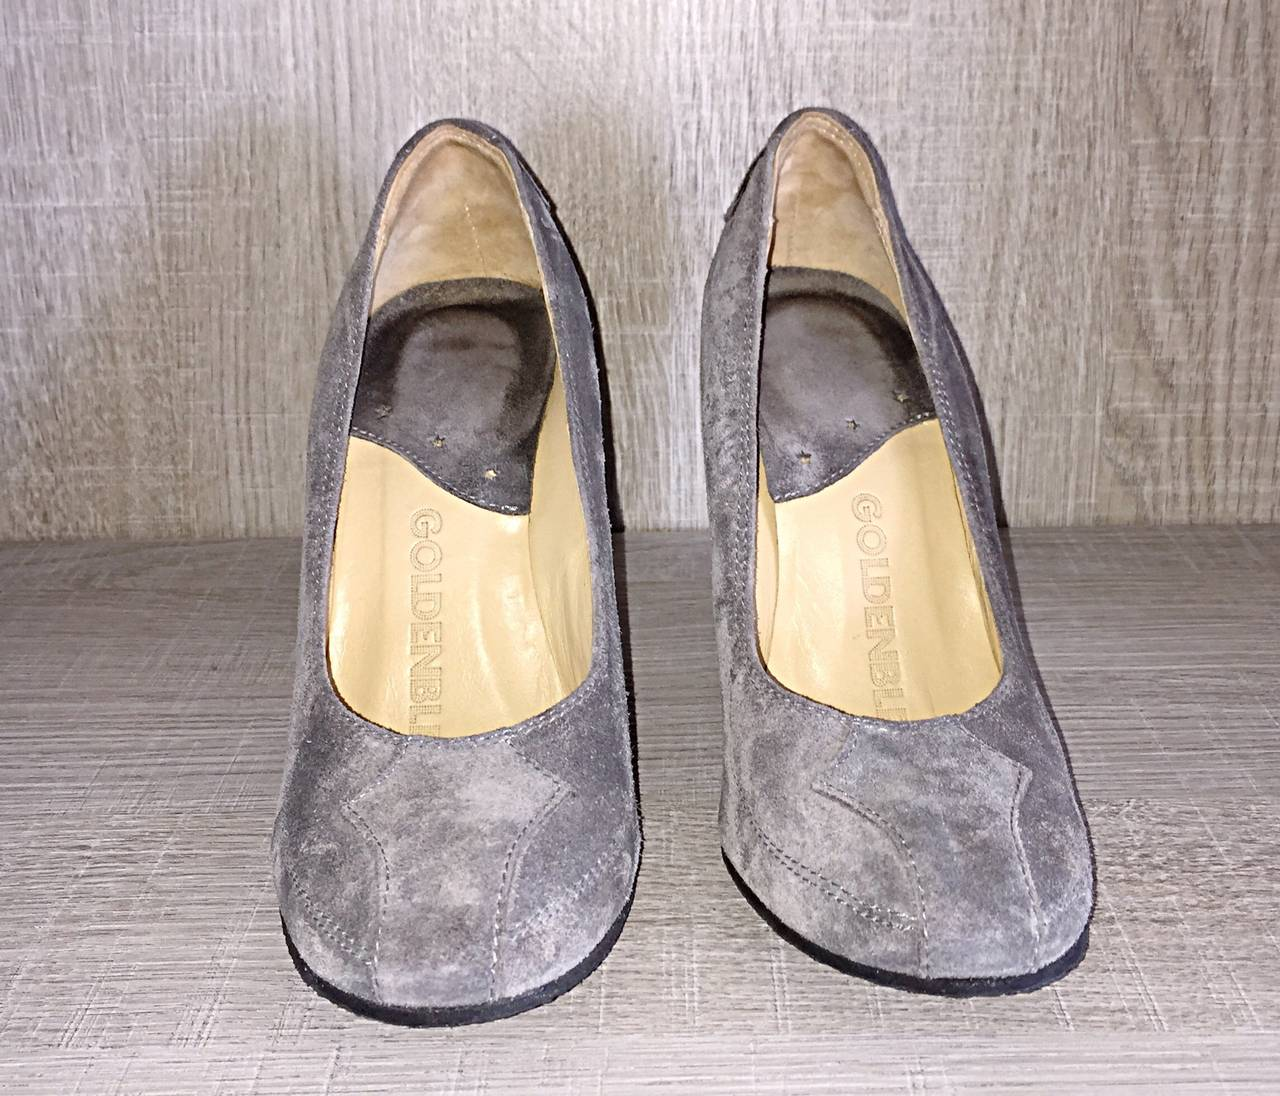 Never Worn Goldenbleu Gray Shoes / Wedges Size 36.5 / 6 - 6.5 Made in Italy For Sale 1